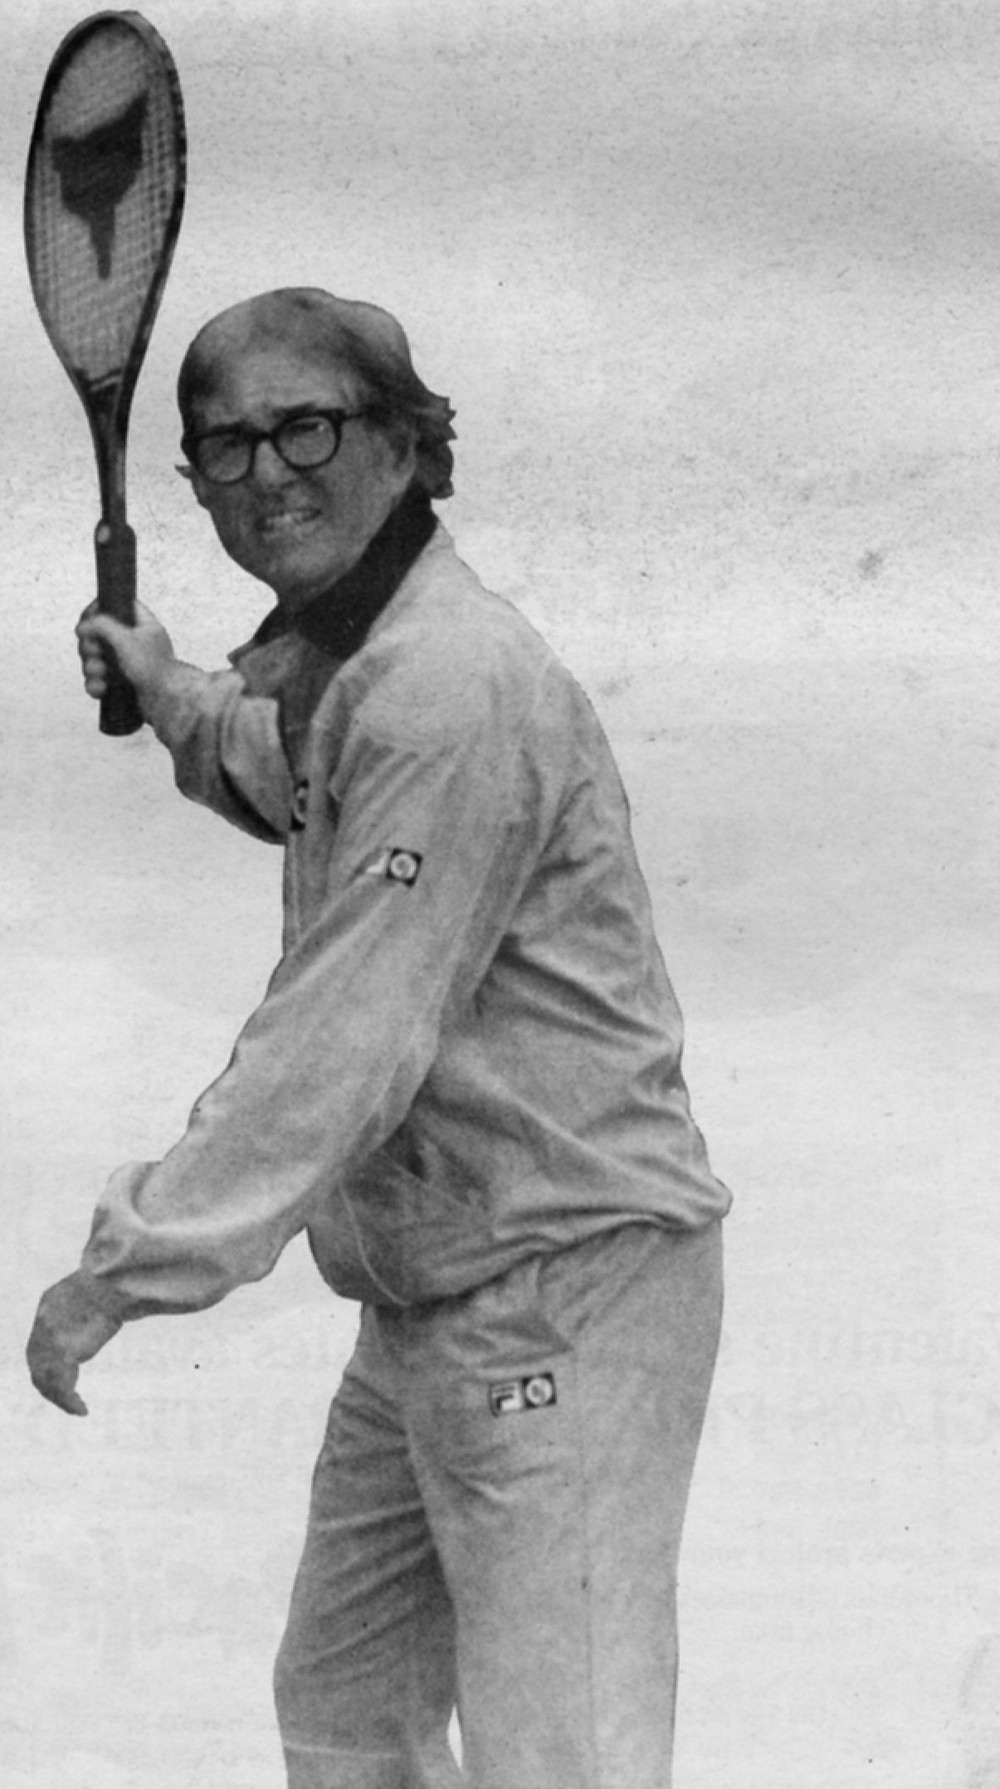 """Bobby Riggs.  """"And you pulled it out?"""" Bobby shouted. Larry nodded, trying to hide the obvious pleasure he took in bringing this small victory to his father."""